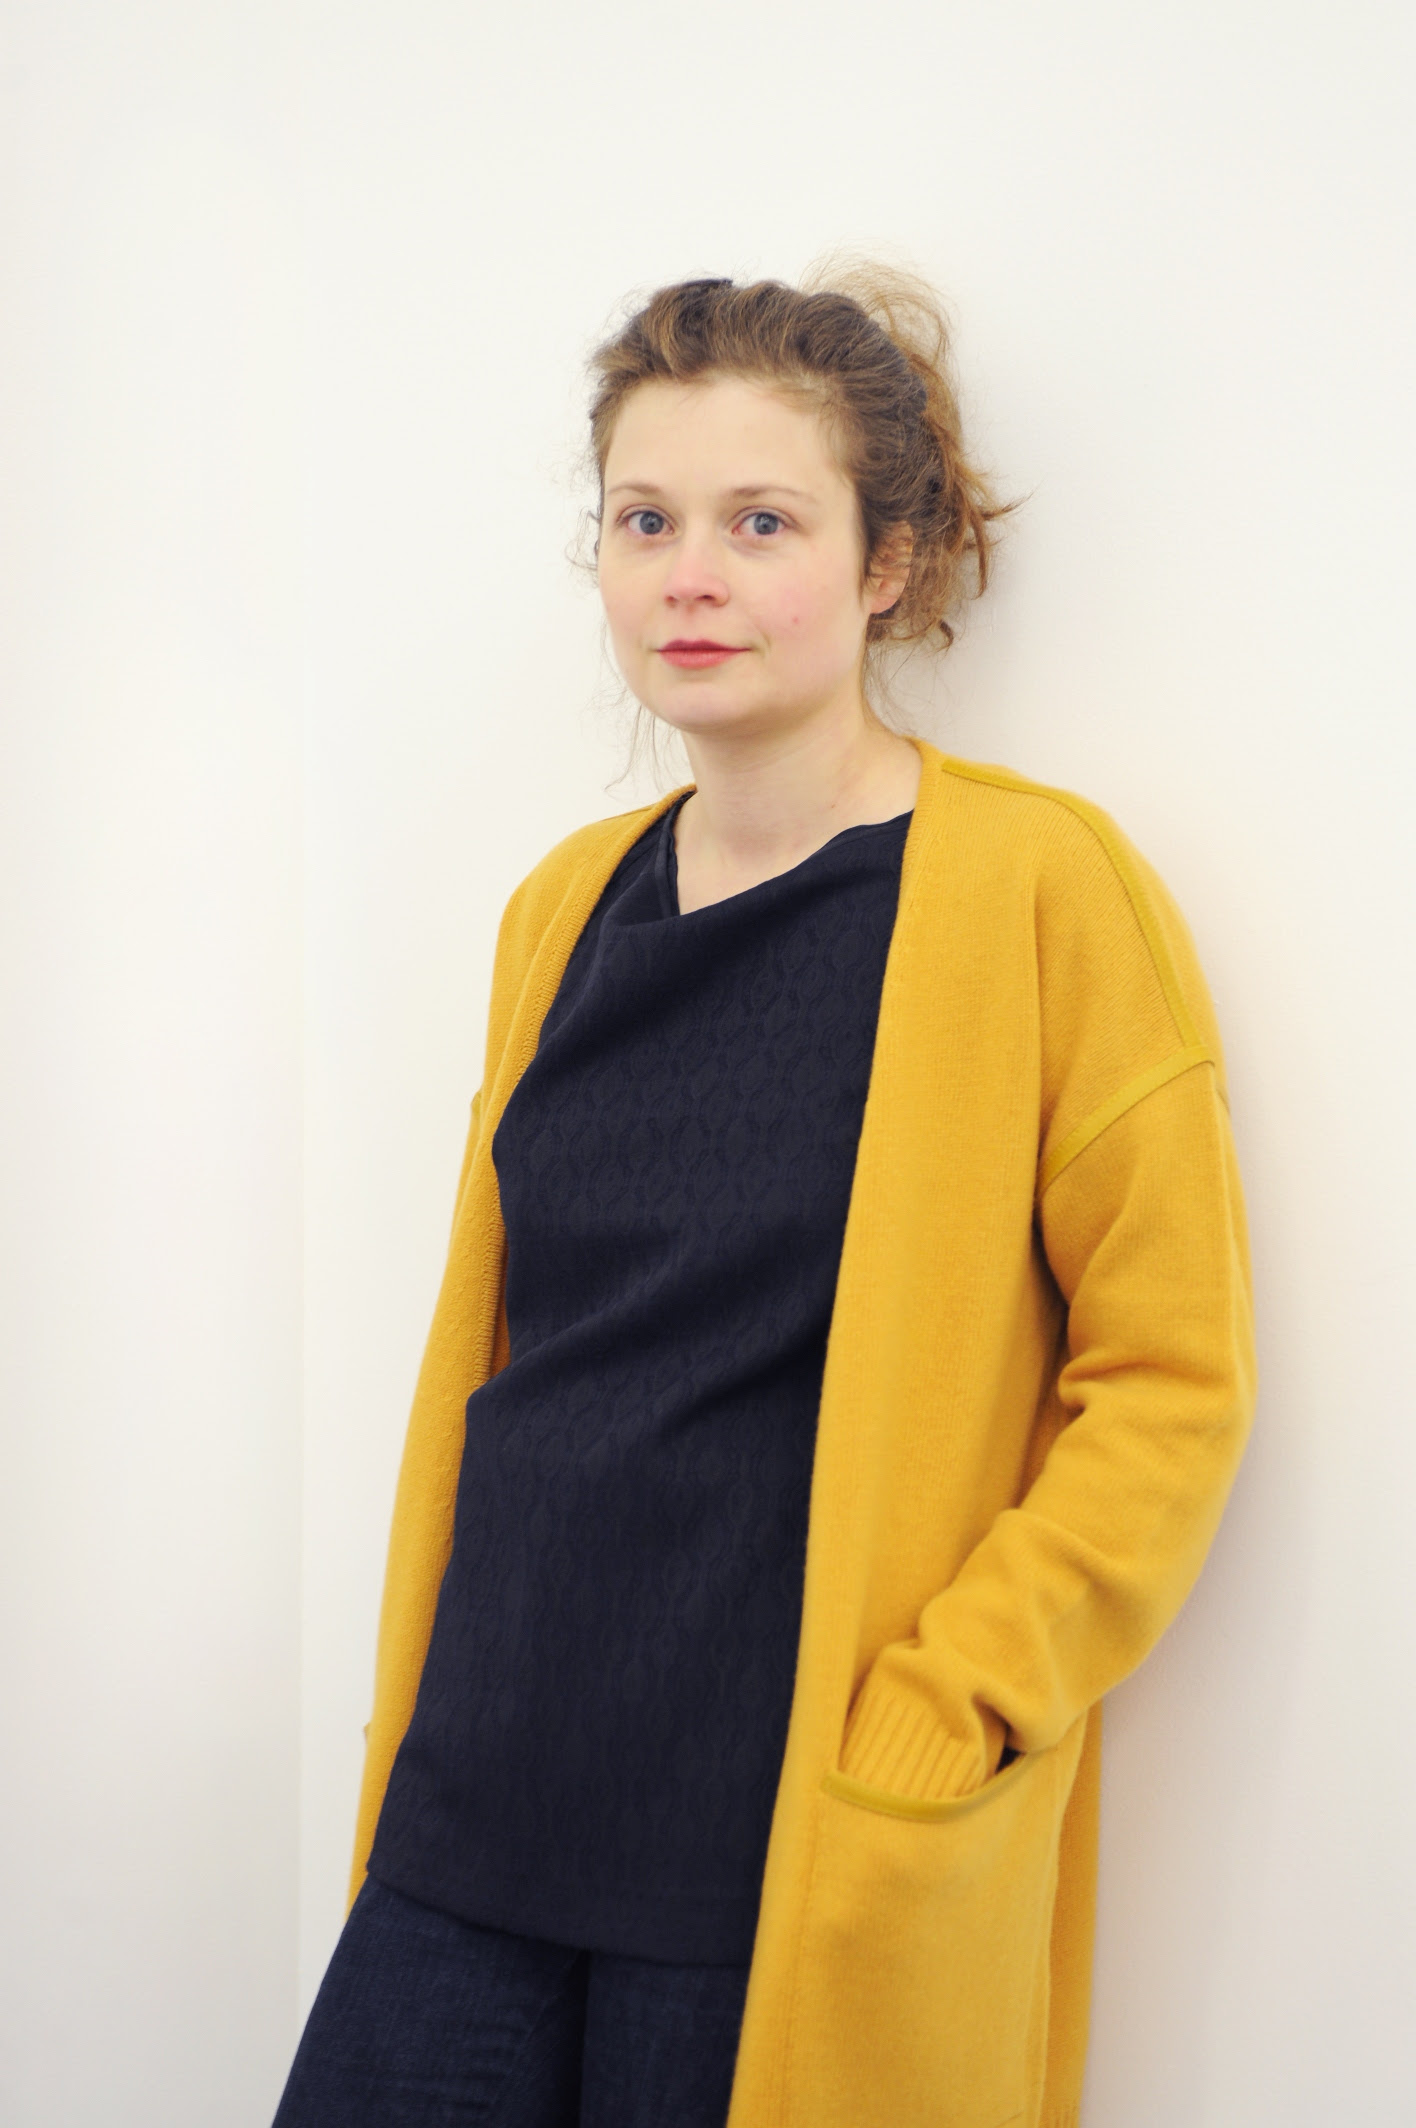 Corin Sworn wins the Max Mara Art Prize for Women in collaboration with Whitechapel Gallery